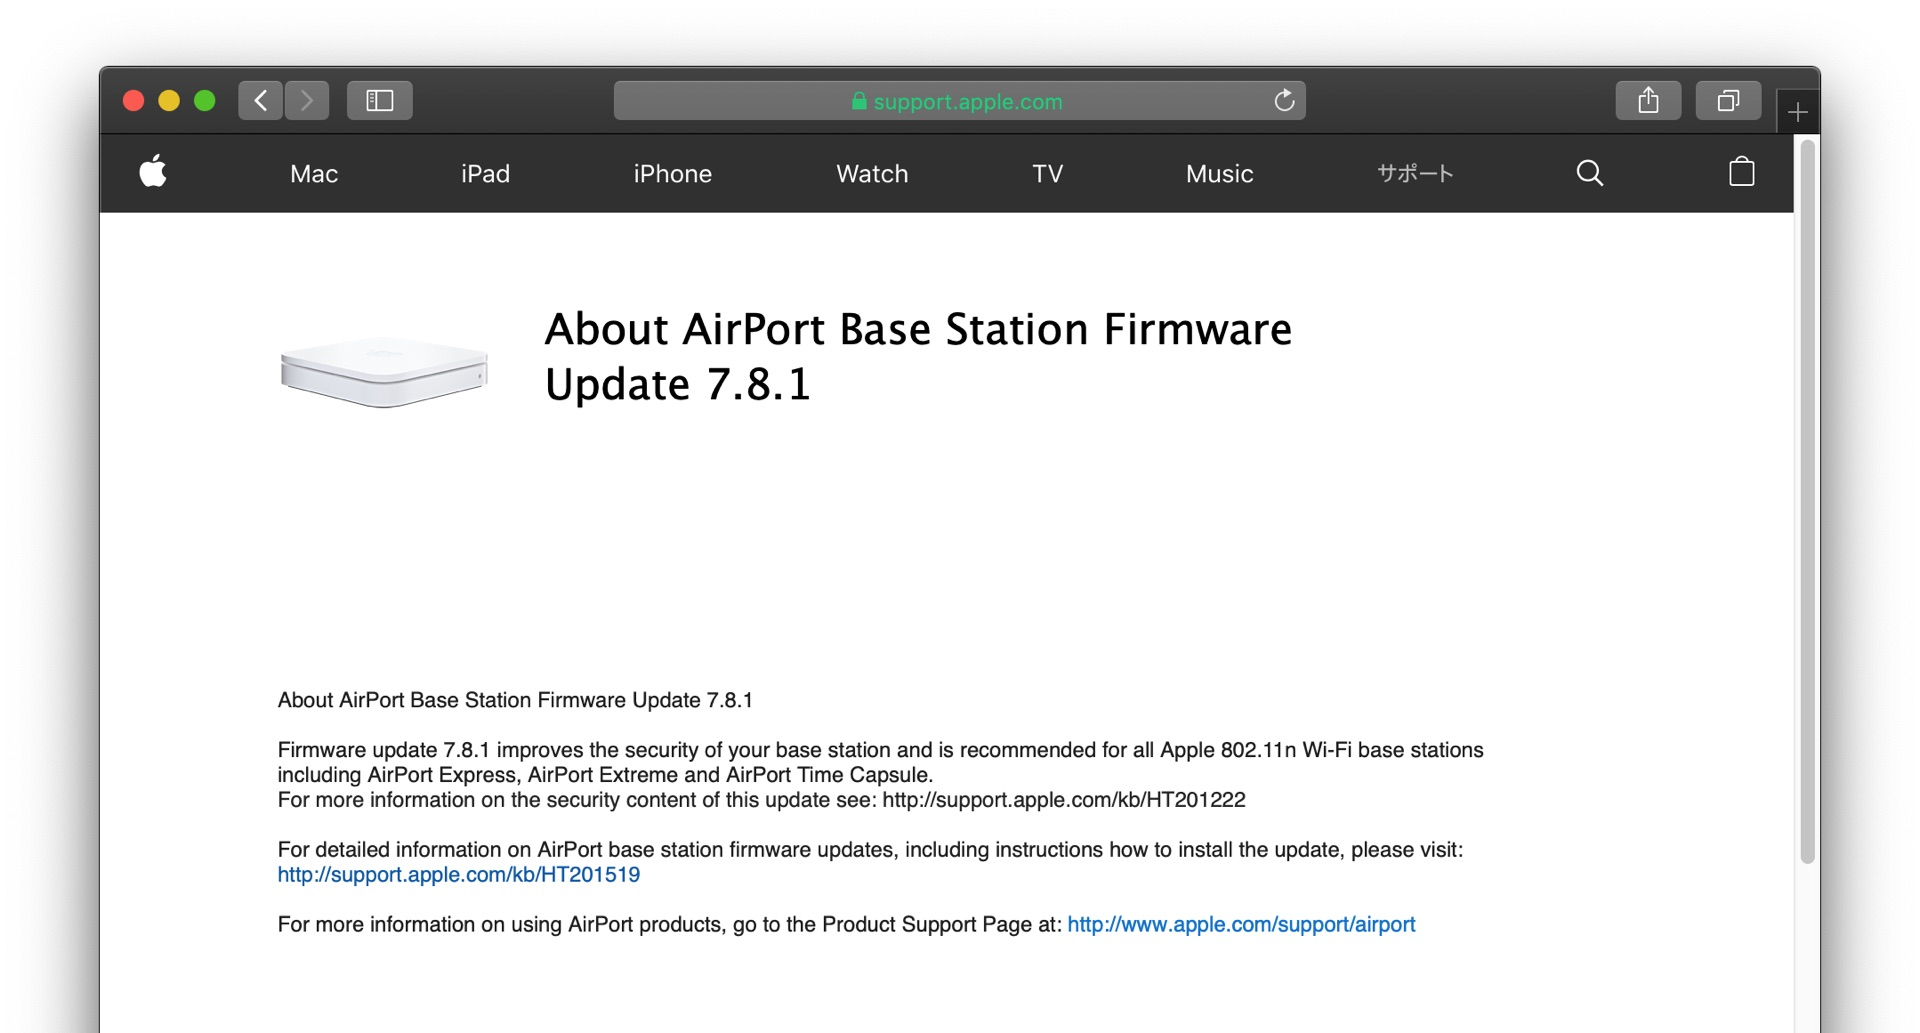 AirPort Base Station Firmware Update 7.8.1